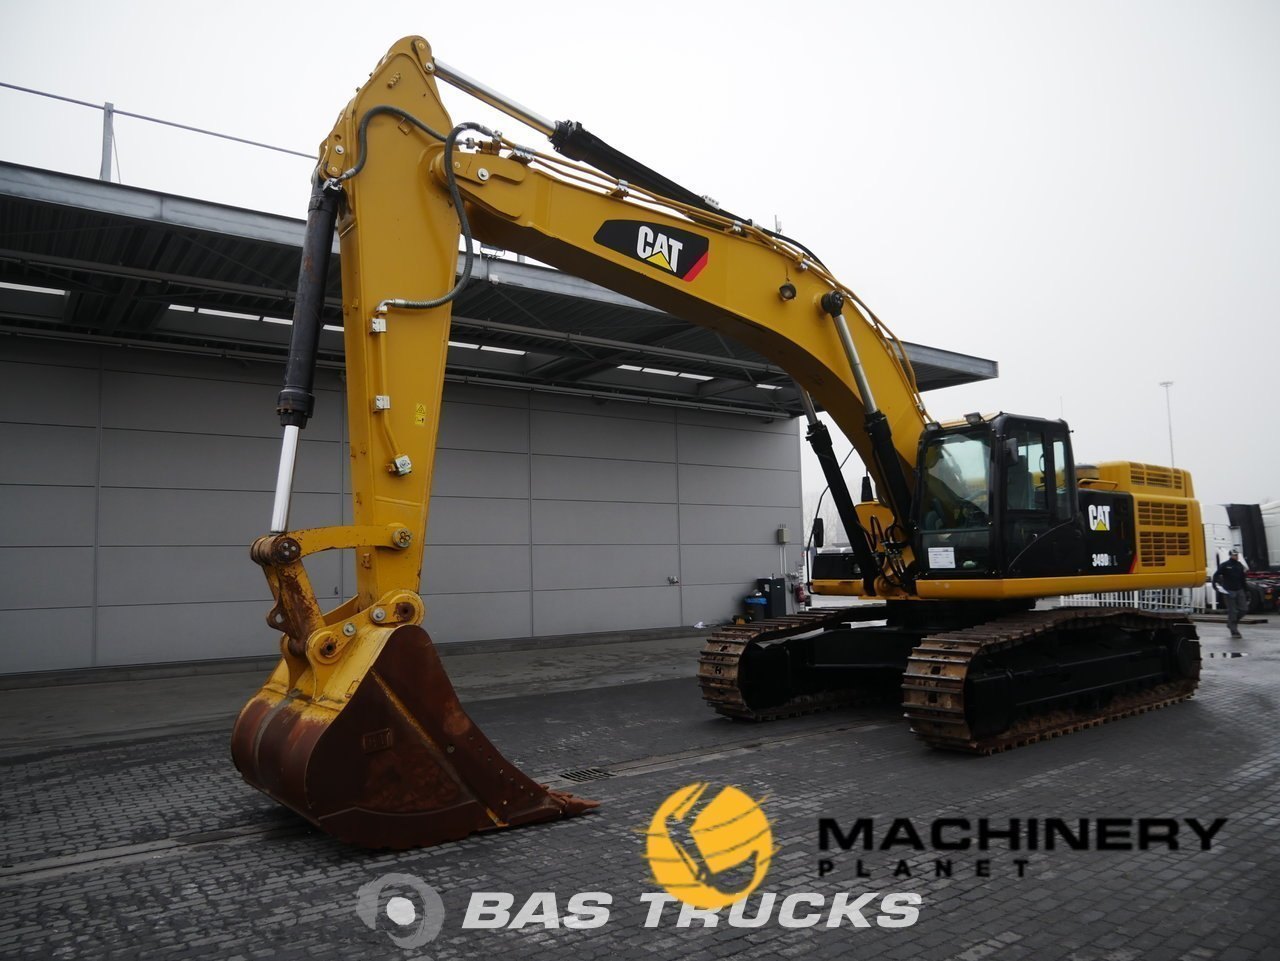 Used-Construction-equipment-Caterpillar-349-D-LME-Track-2014_140369_1-1554197935663_5ca32dafa1f08-1.jpg